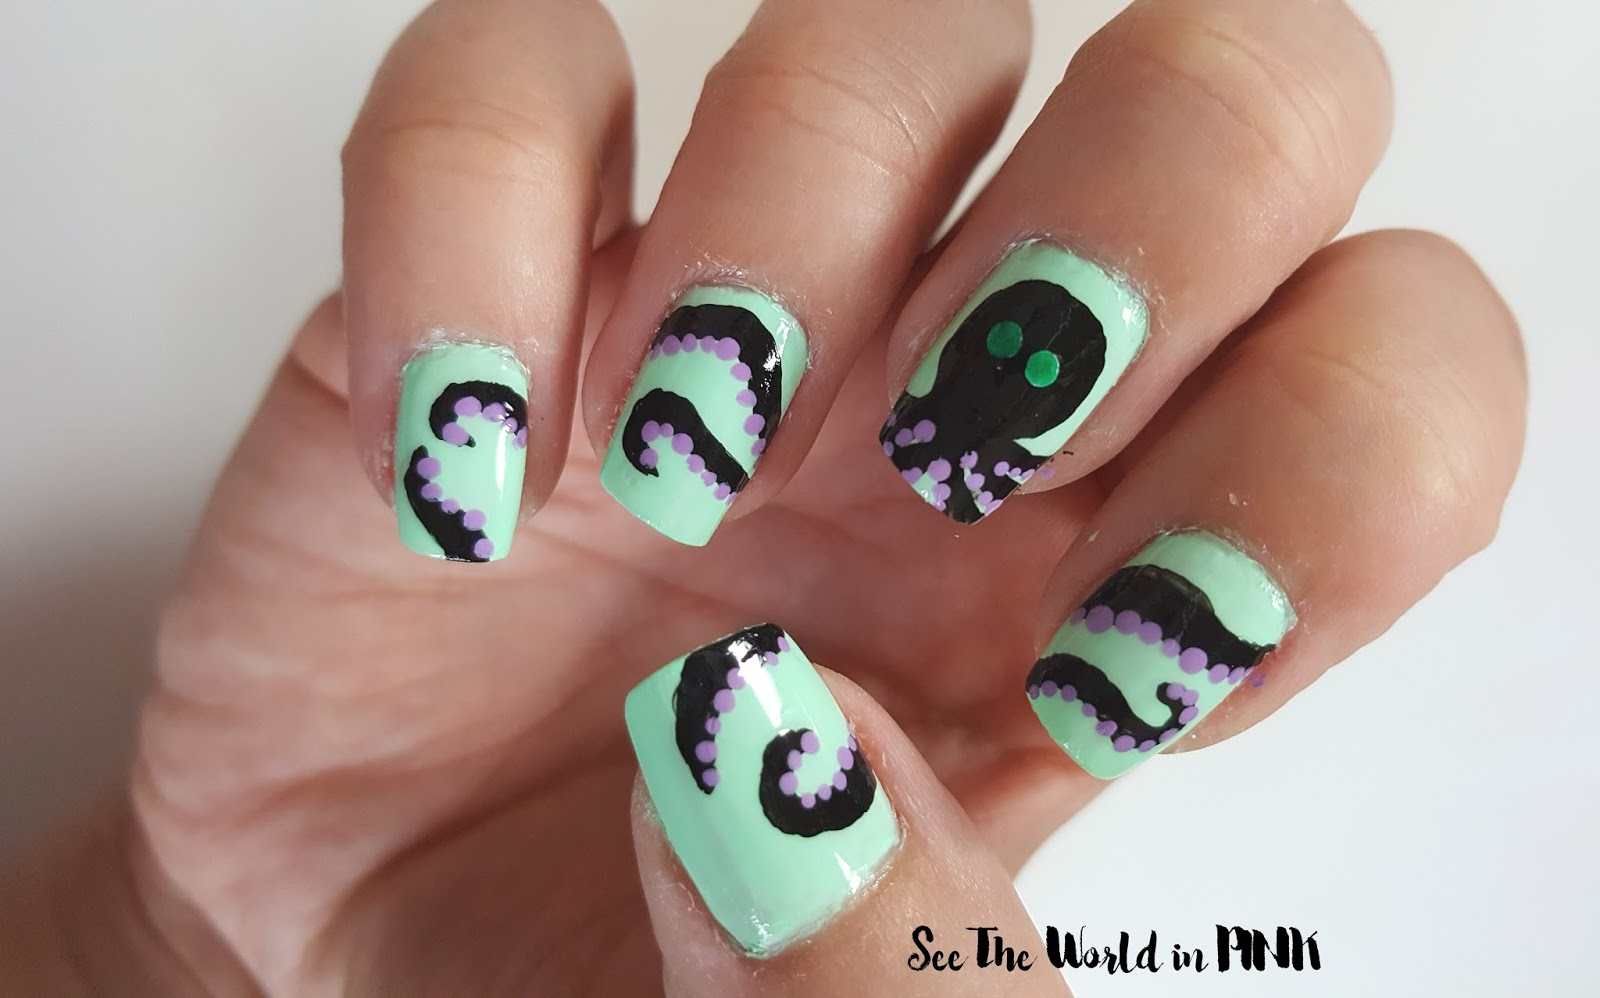 Manicure Monday - Octopus Nail Art